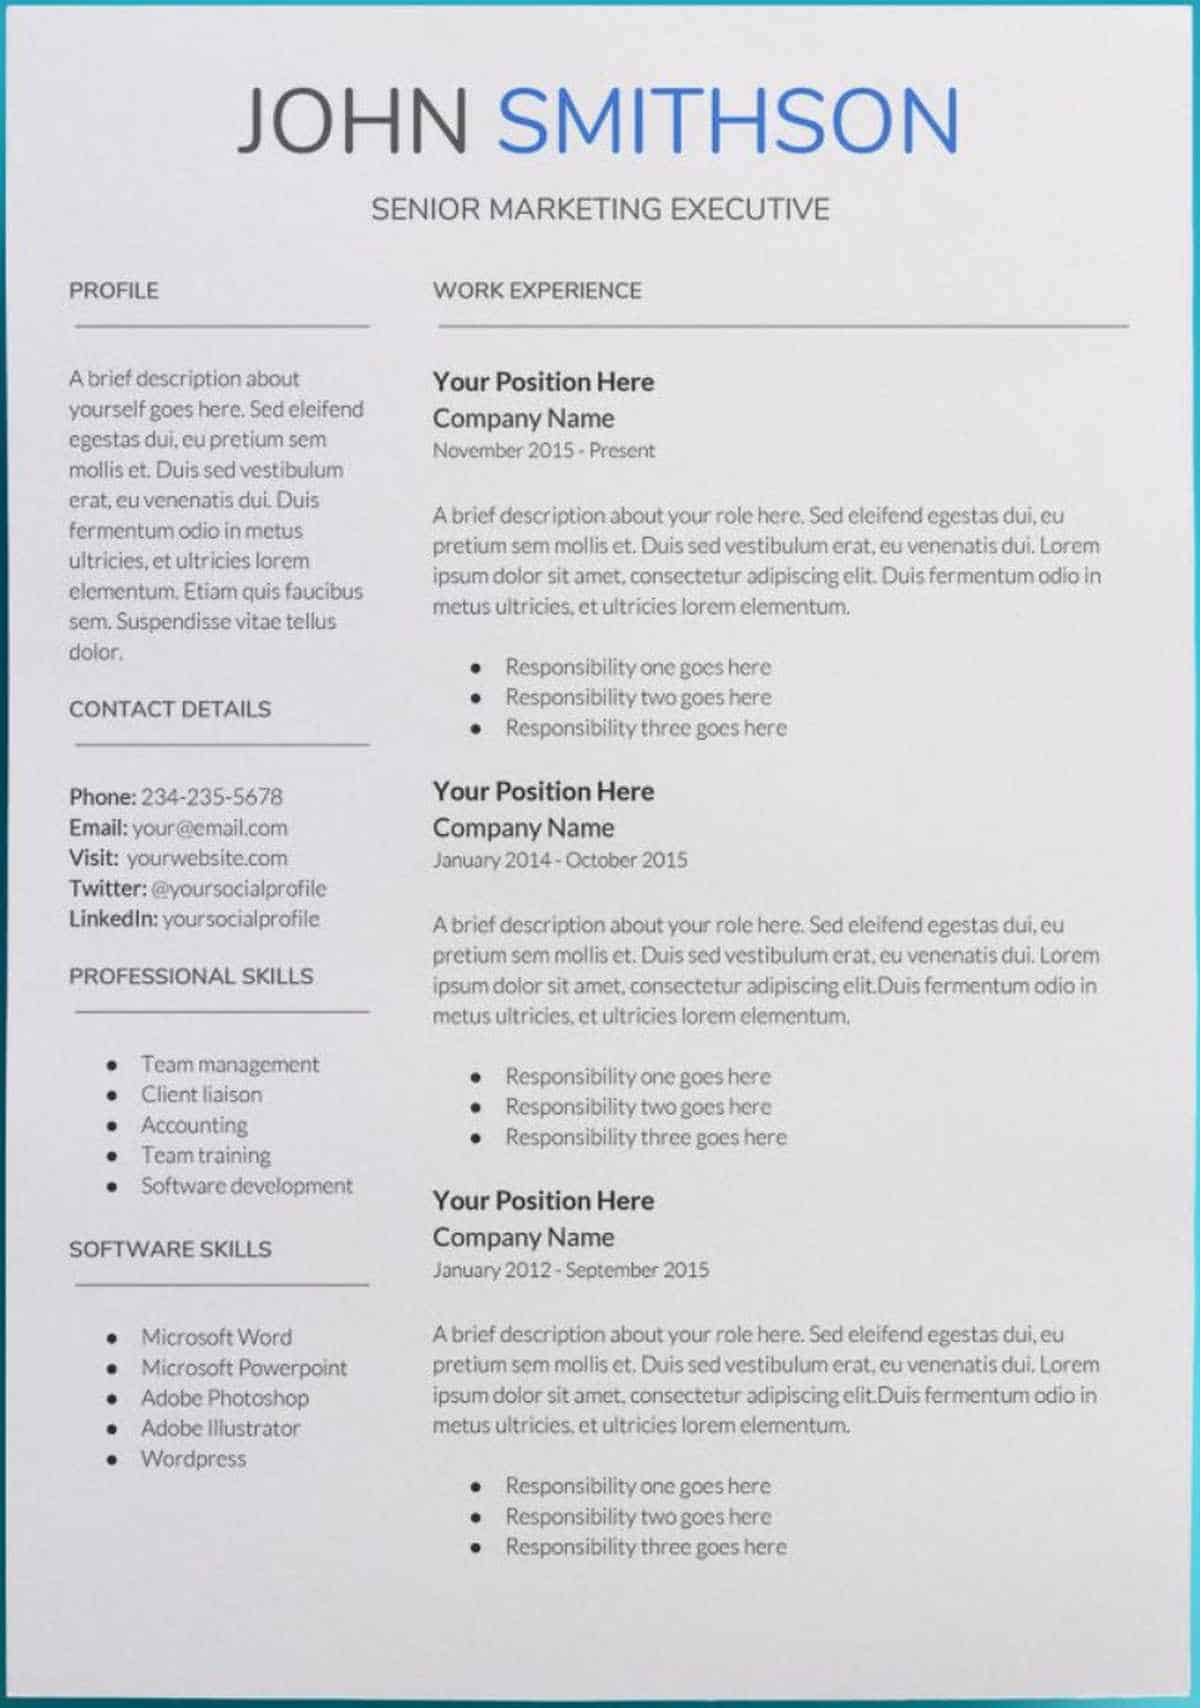 google docs resume templates downloadable pdfs sheets template saturn free import export Resume Google Sheets Resume Template